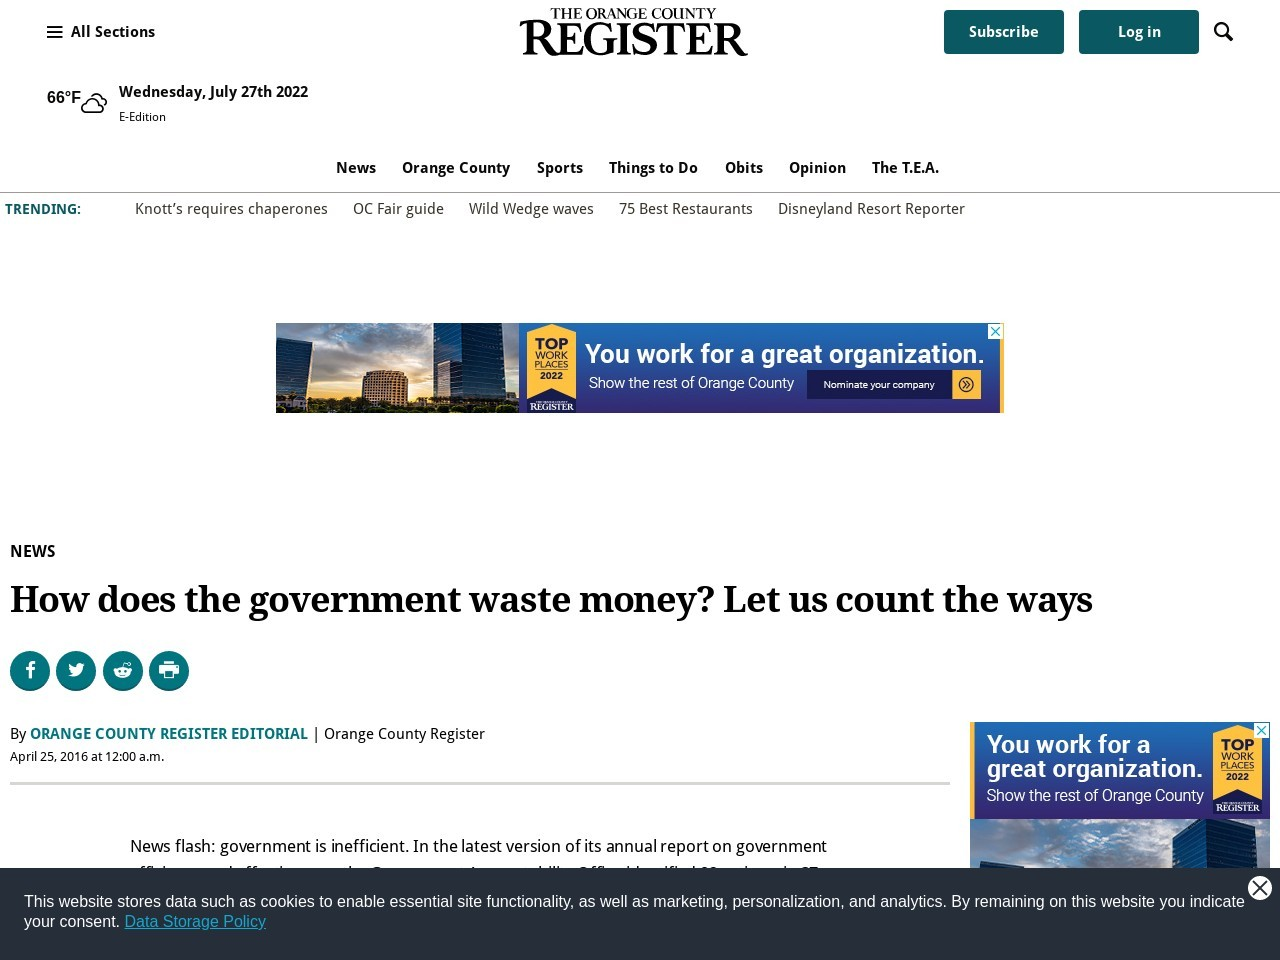 How does the government waste money? Let us count the ways